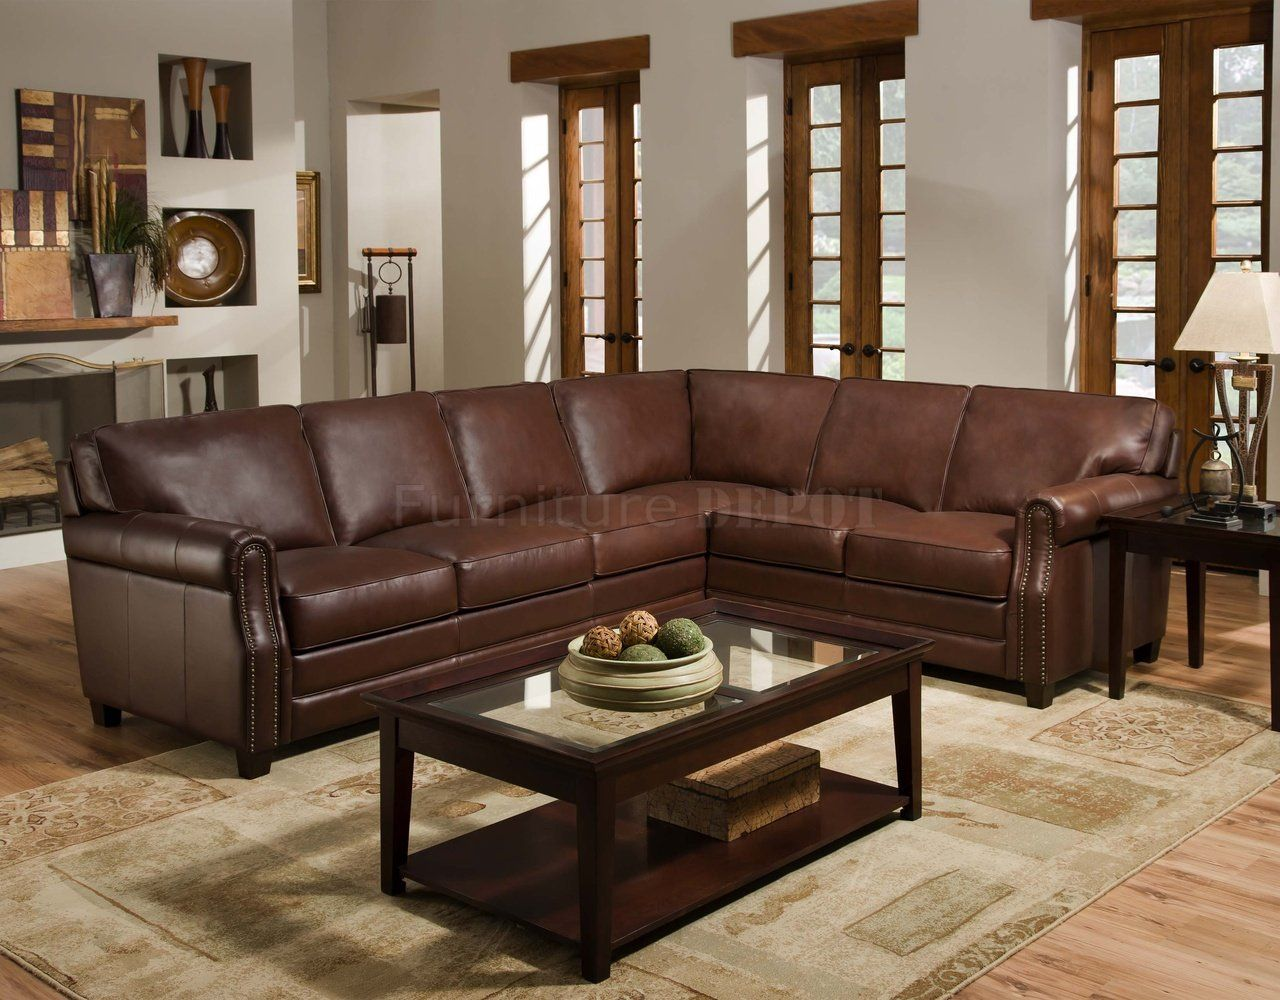 Image For Leather Sectional Sofas Wallpaper High Quality Resolution G7kci